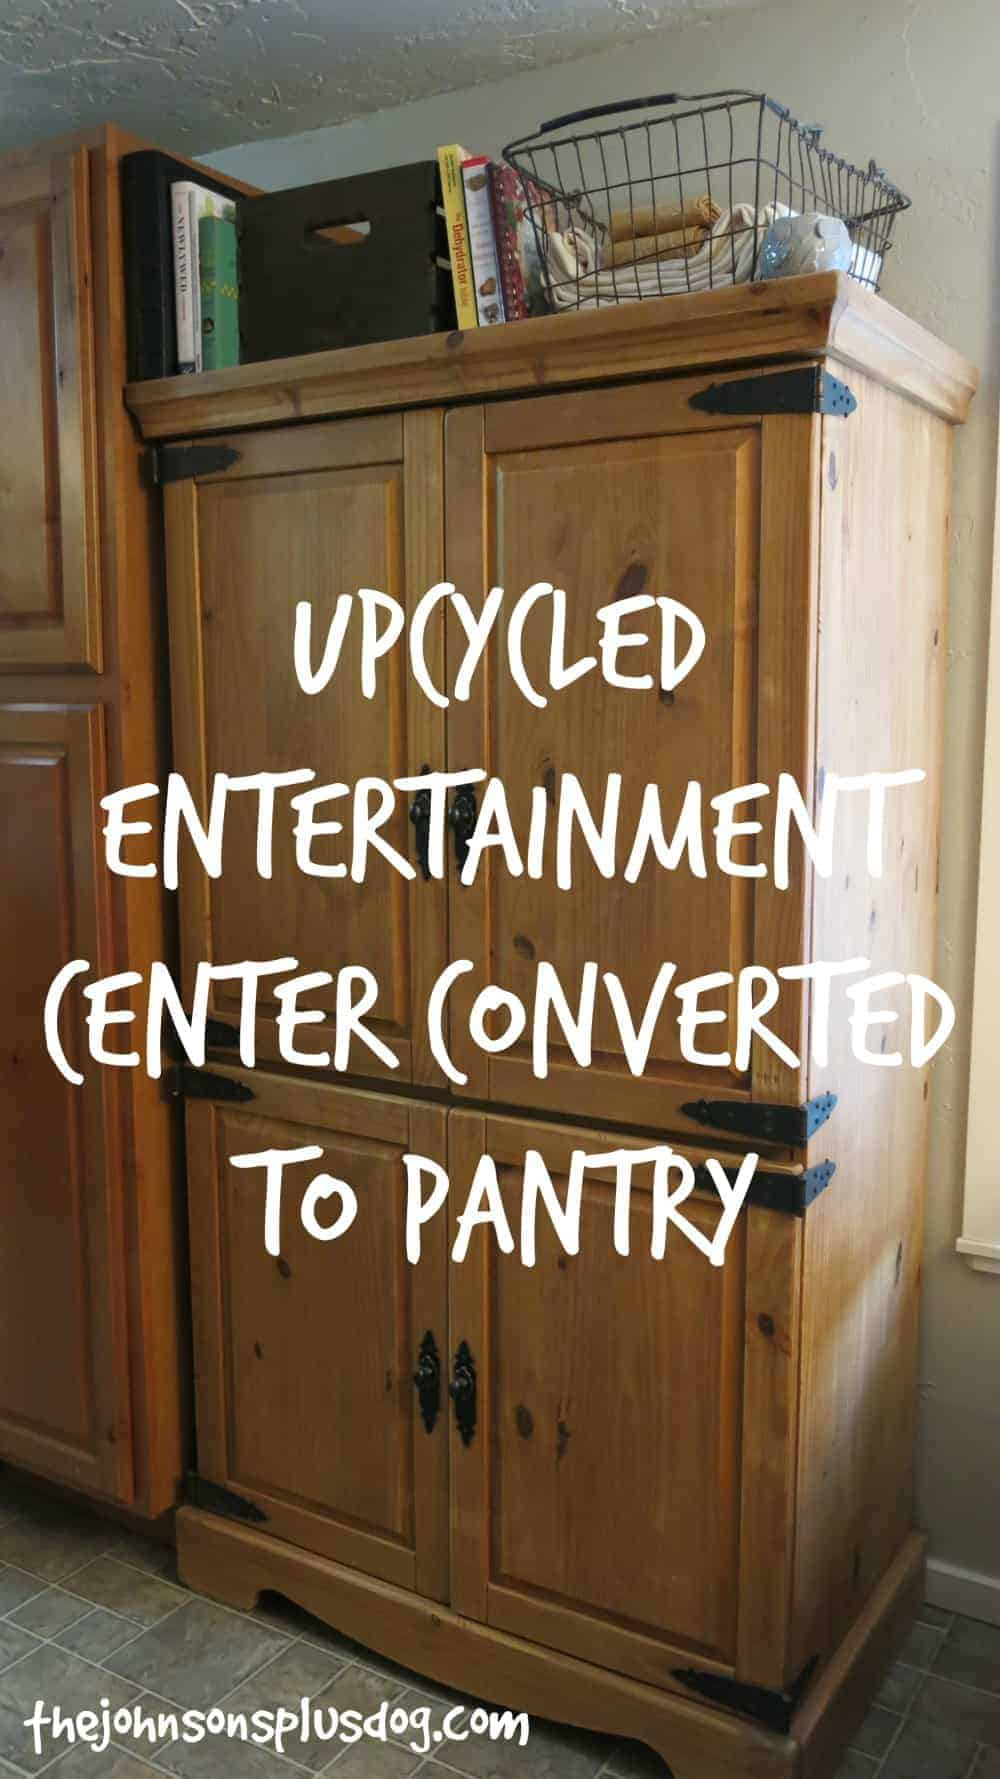 Upcycled Entertainment Center Converted To Pantry Making